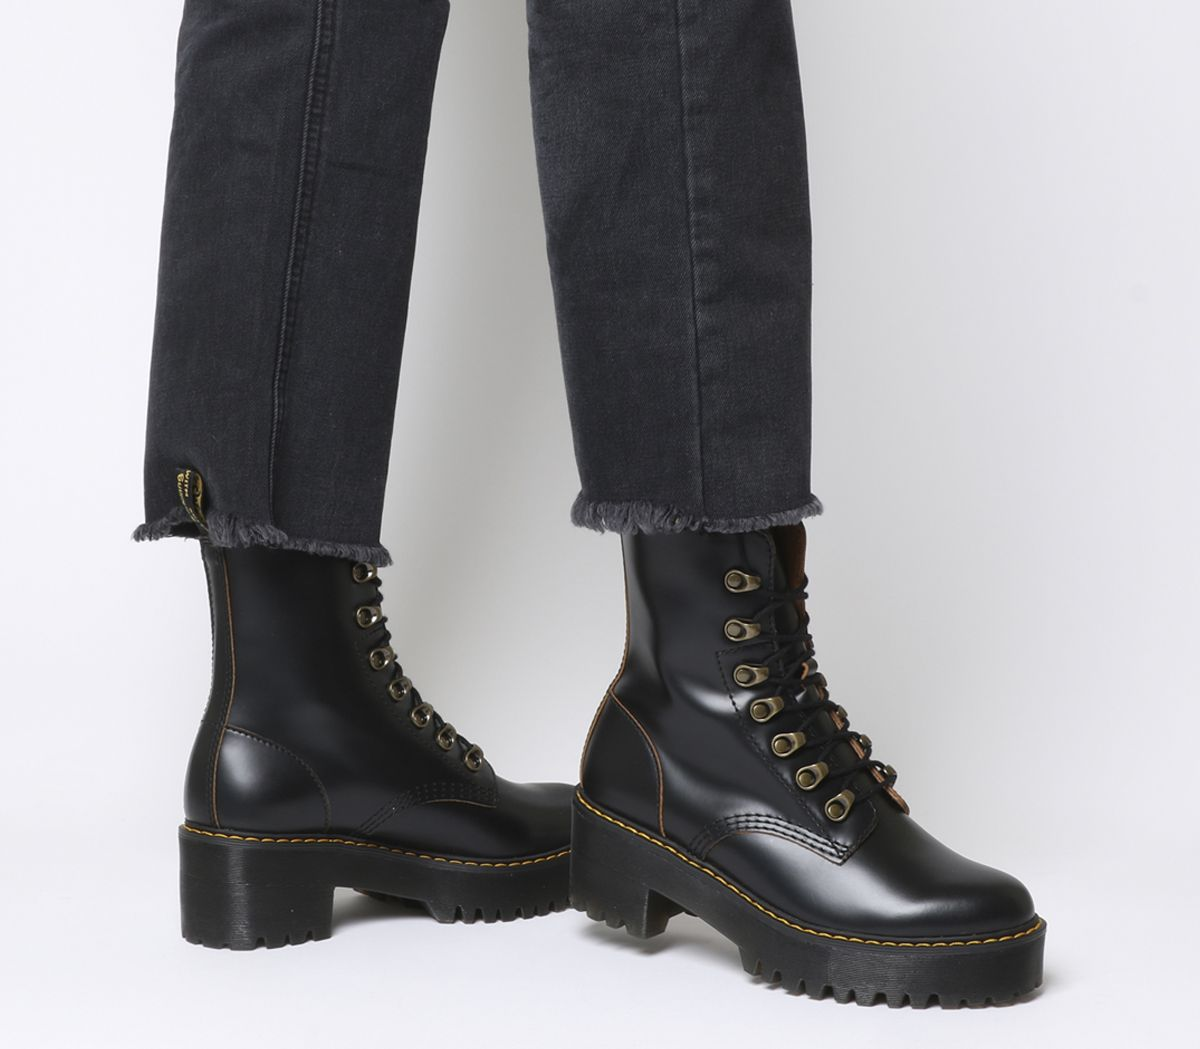 a6030375ad5 Dr. Martens Leona Lace Boots Black - Ankle Boots